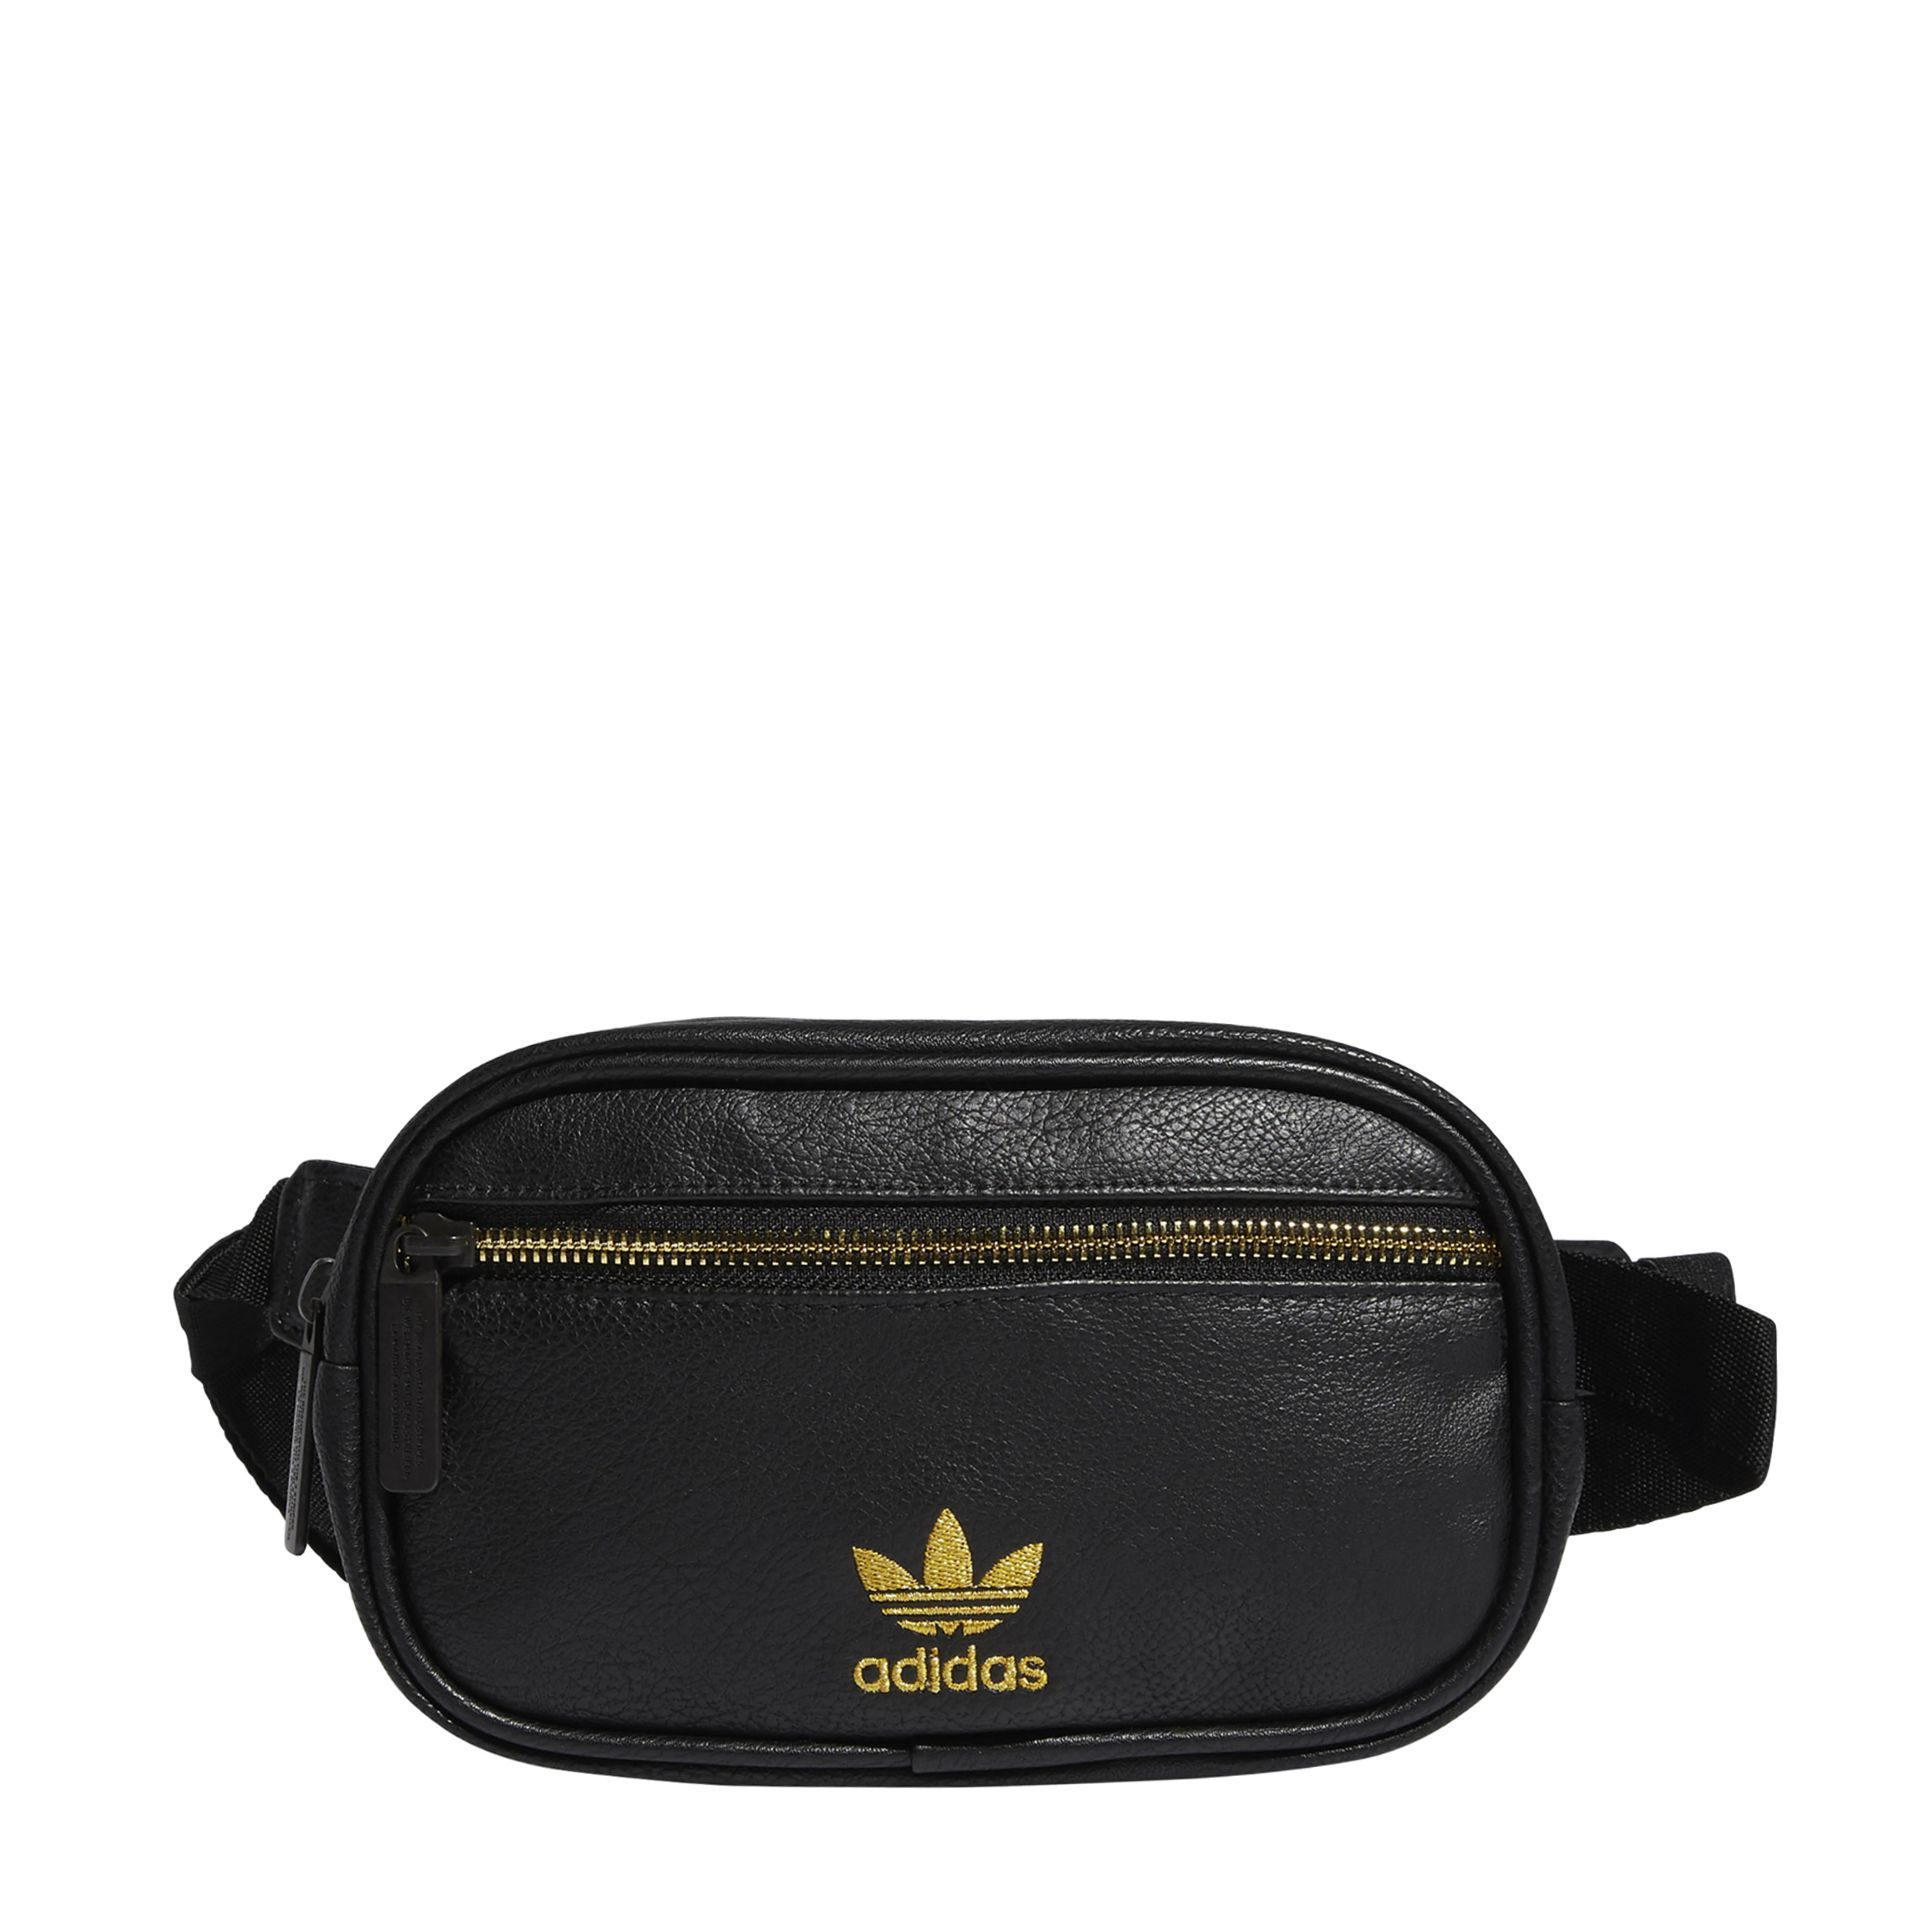 Waist Pack Waist pack, Leather, Black adidas